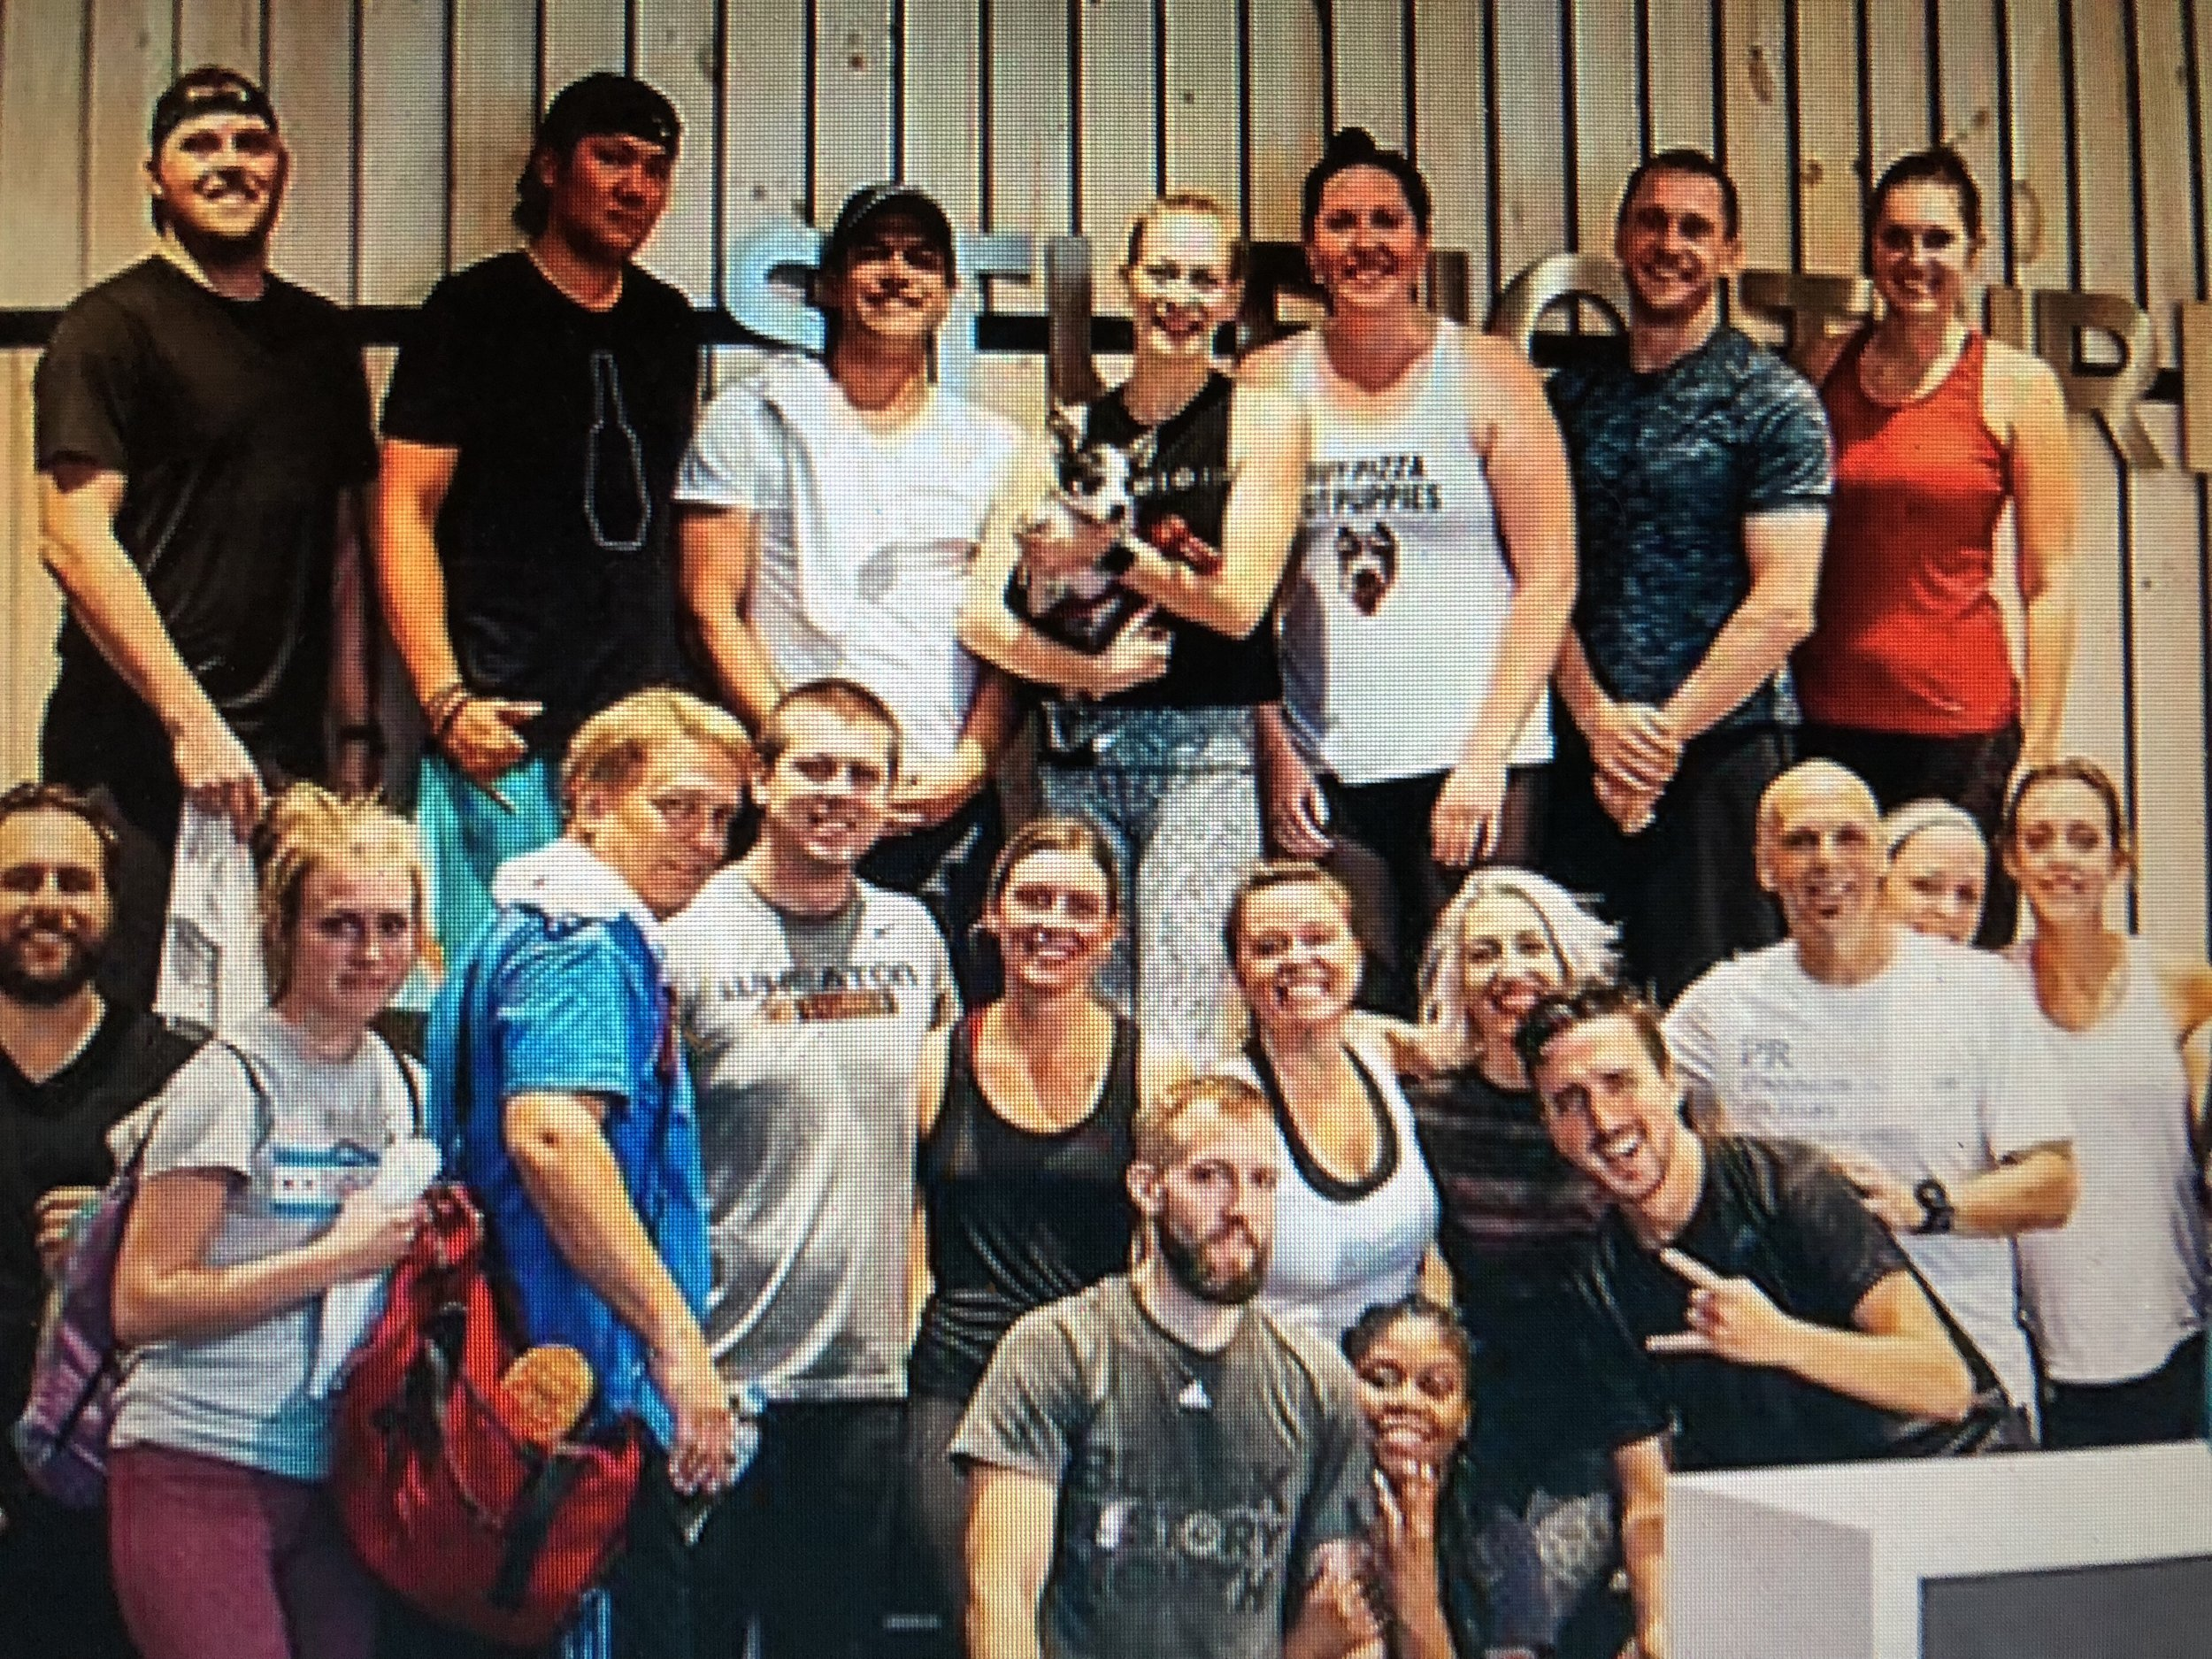 2018 1st Annual Puppy Pedal at Studio Three Chicago benefitting K9 for Warriors and PAWS Chicago . Thank you to all the riders that made this event so great.